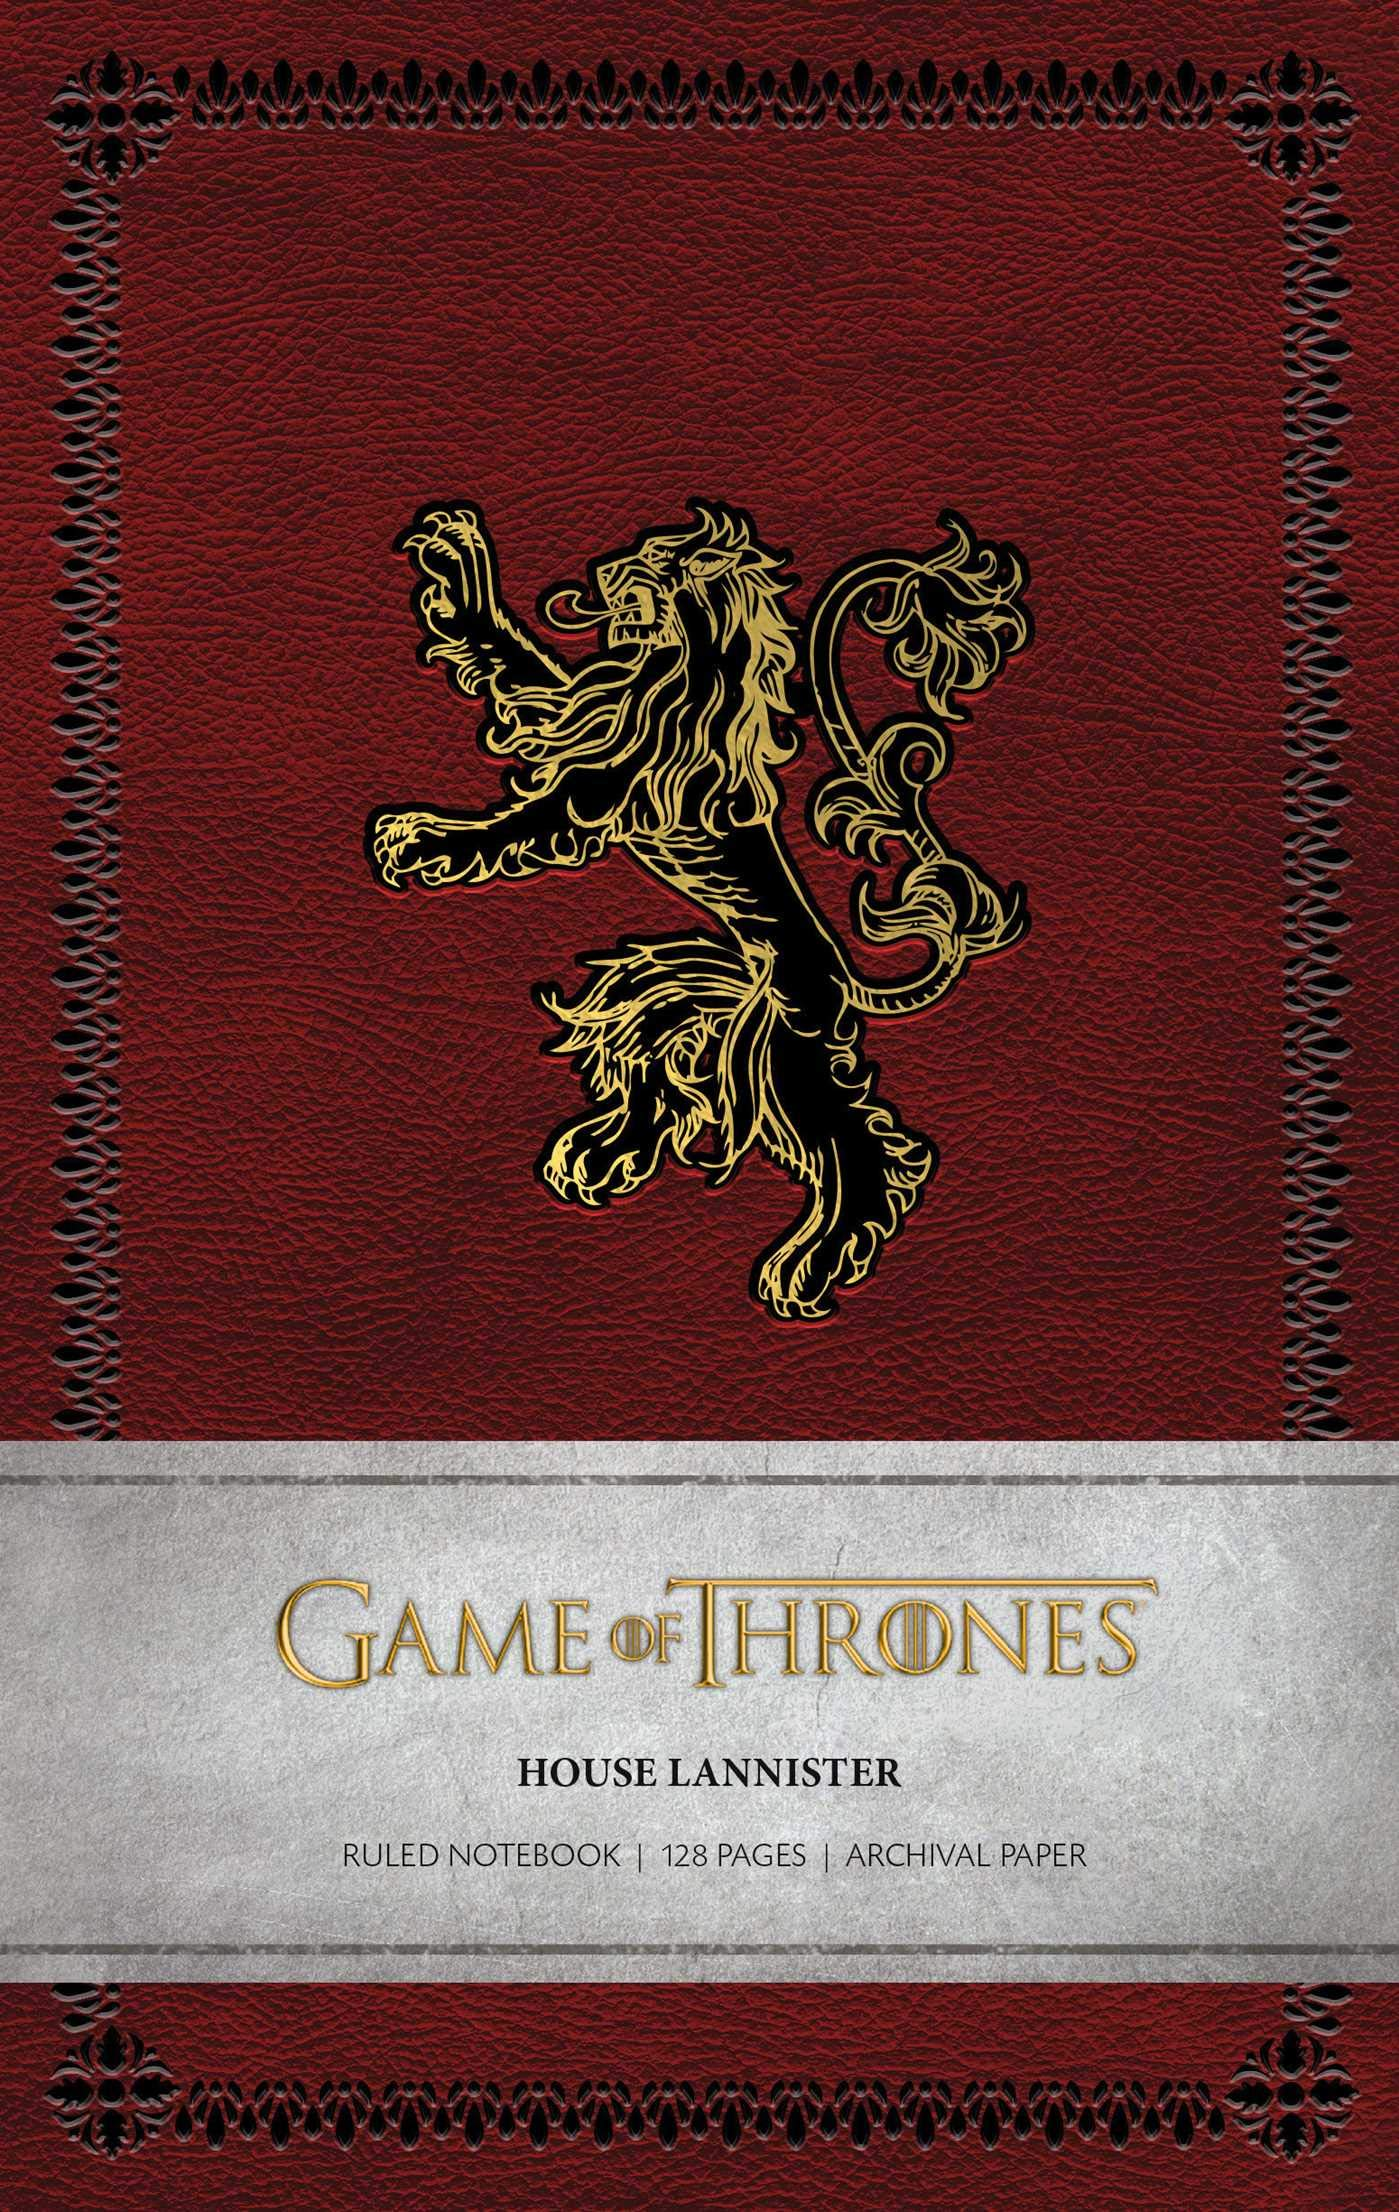 Game Of Thrones House Lannister Ruled Notebook Amazon Com Br